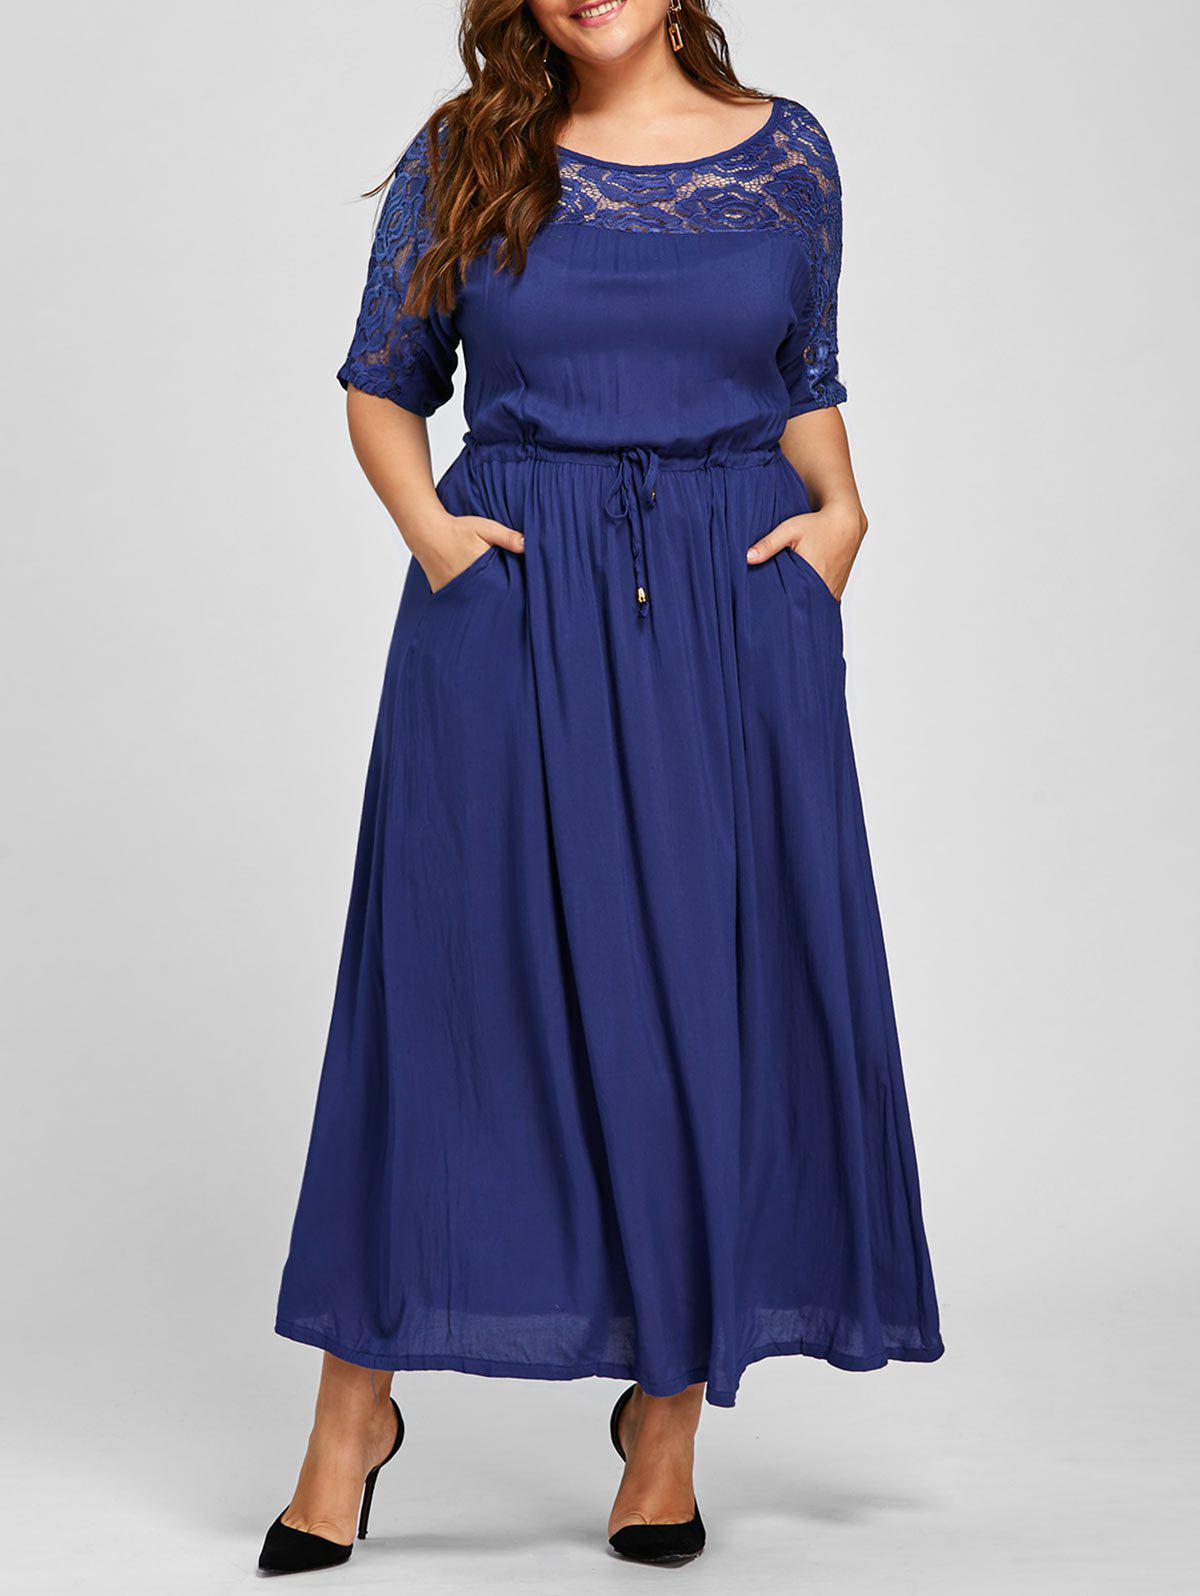 Maxi Plus Size Lace Trim Drawstring DressWOMEN<br><br>Size: 3XL; Color: BLUE; Style: Casual; Material: Polyester,Spandex; Silhouette: Straight; Dresses Length: Ankle-Length; Neckline: Round Collar; Sleeve Length: Half Sleeves; Pattern Type: Solid; With Belt: No; Season: Fall,Spring; Weight: 0.3600kg; Package Contents: 1 x Dress;